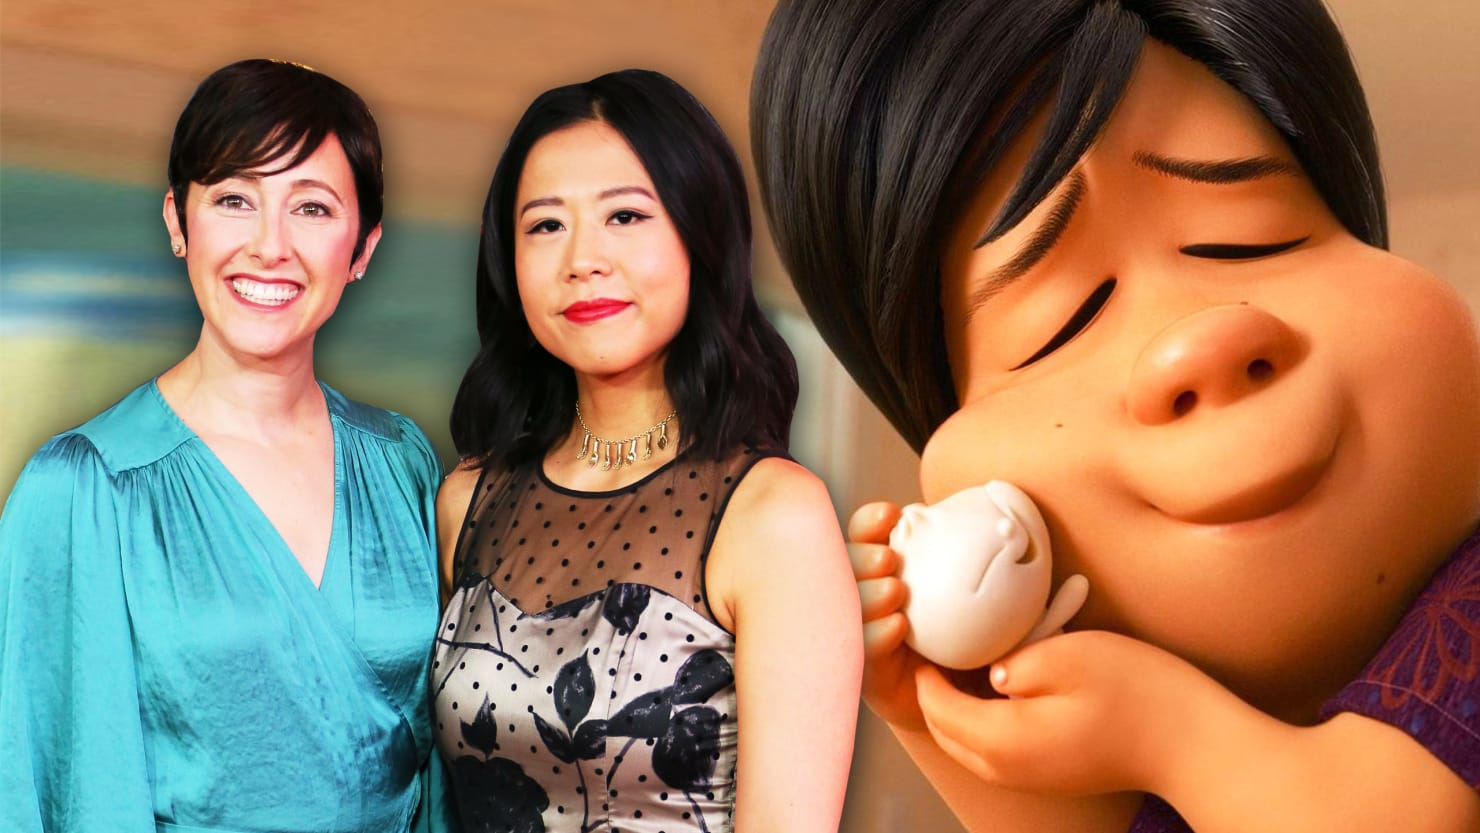 bao': pixar's first female short film director, domee shi, on her